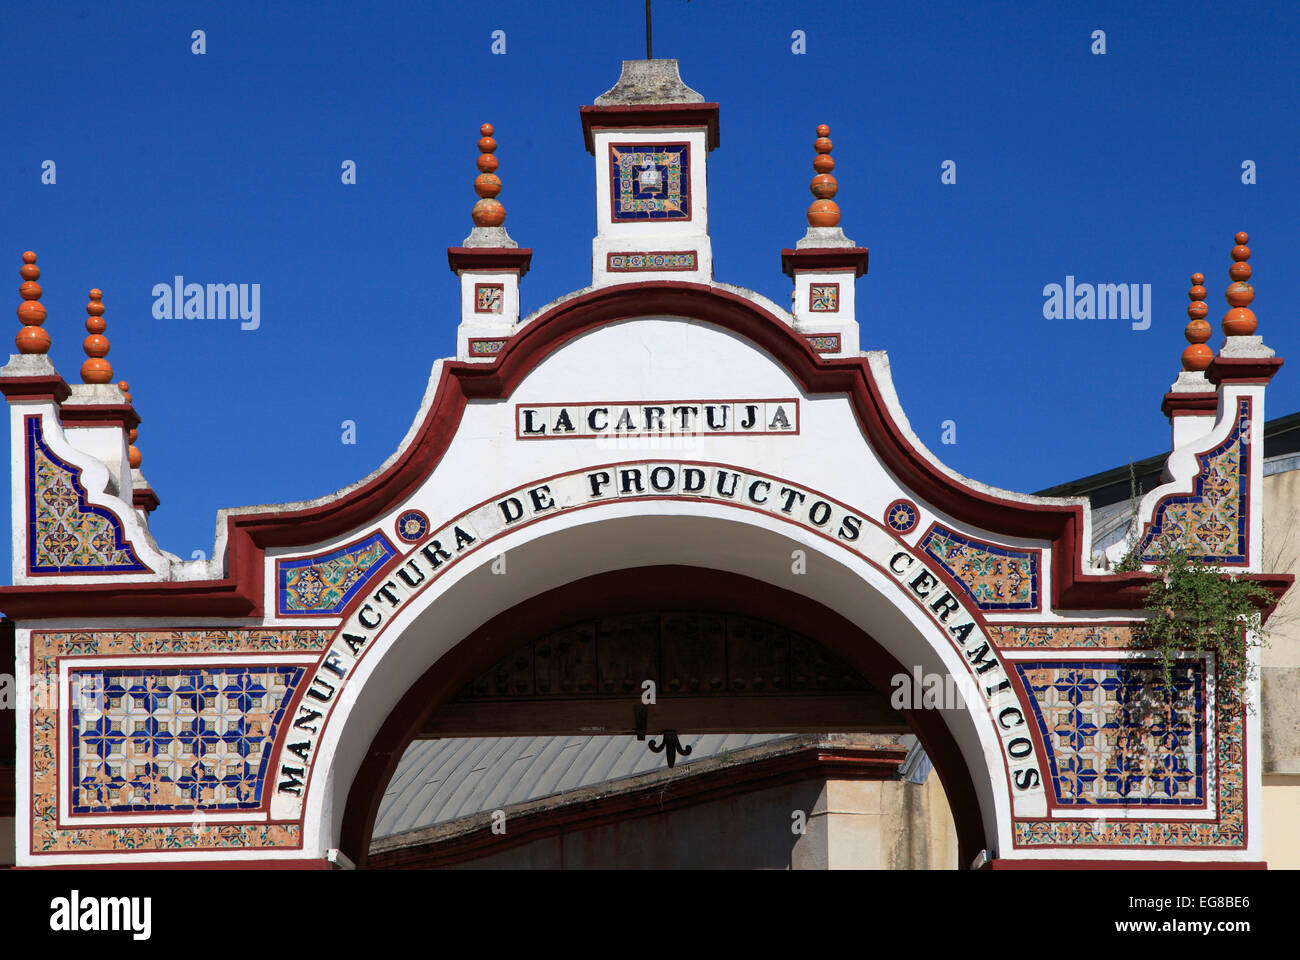 Spain, Andalusia, Seville, La Cartuja, gate, - Stock Image